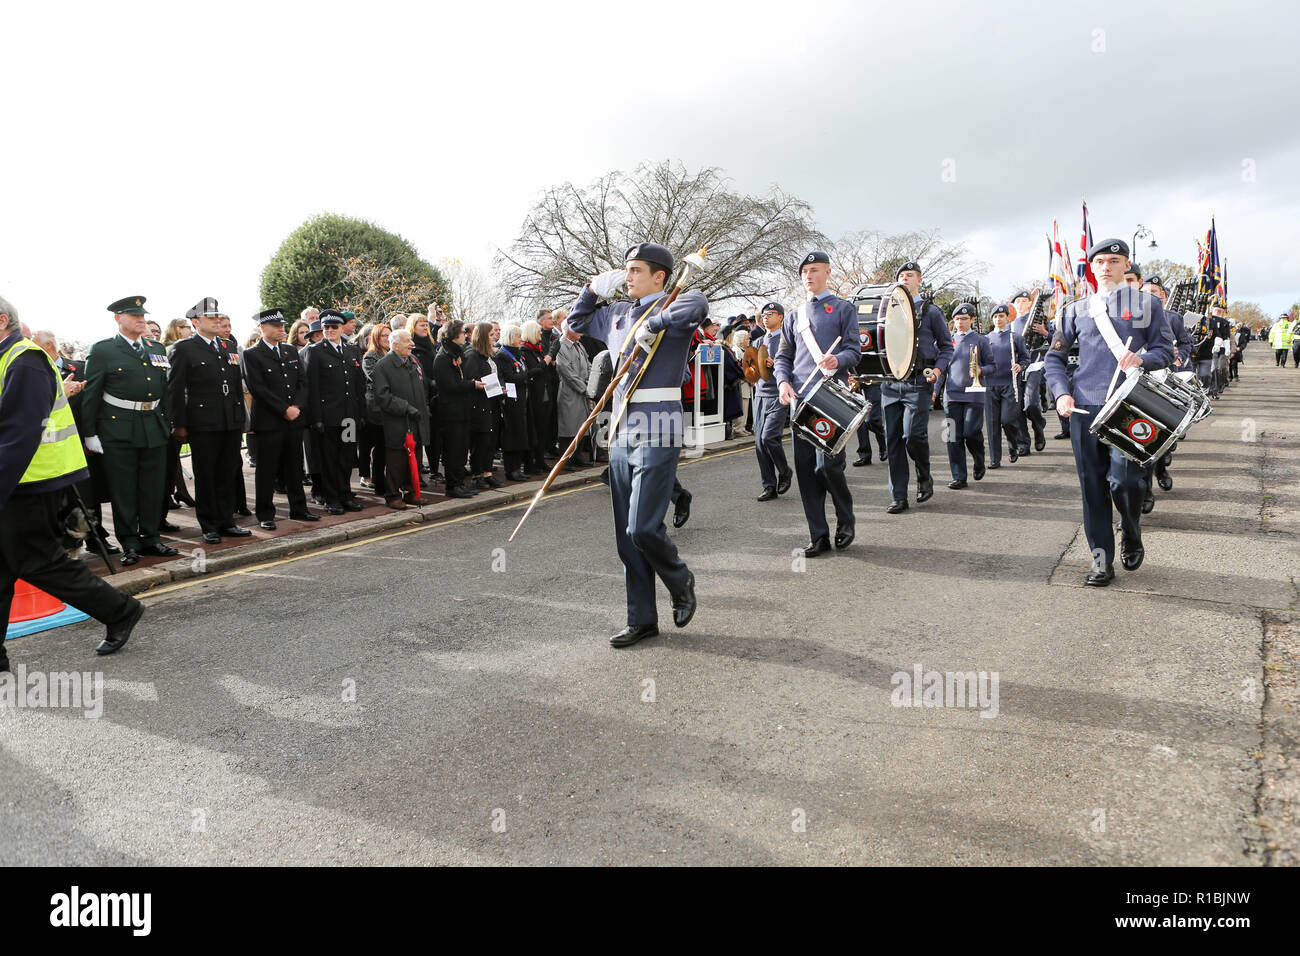 Southend on Sea, UK. 11th Nov, 2018. The Parade starts at Prittlewell Square and proceeds to Southend Cenotaph for a Service of Remembrance at 11am. Penelope Barritt/Alamy Live News Stock Photo